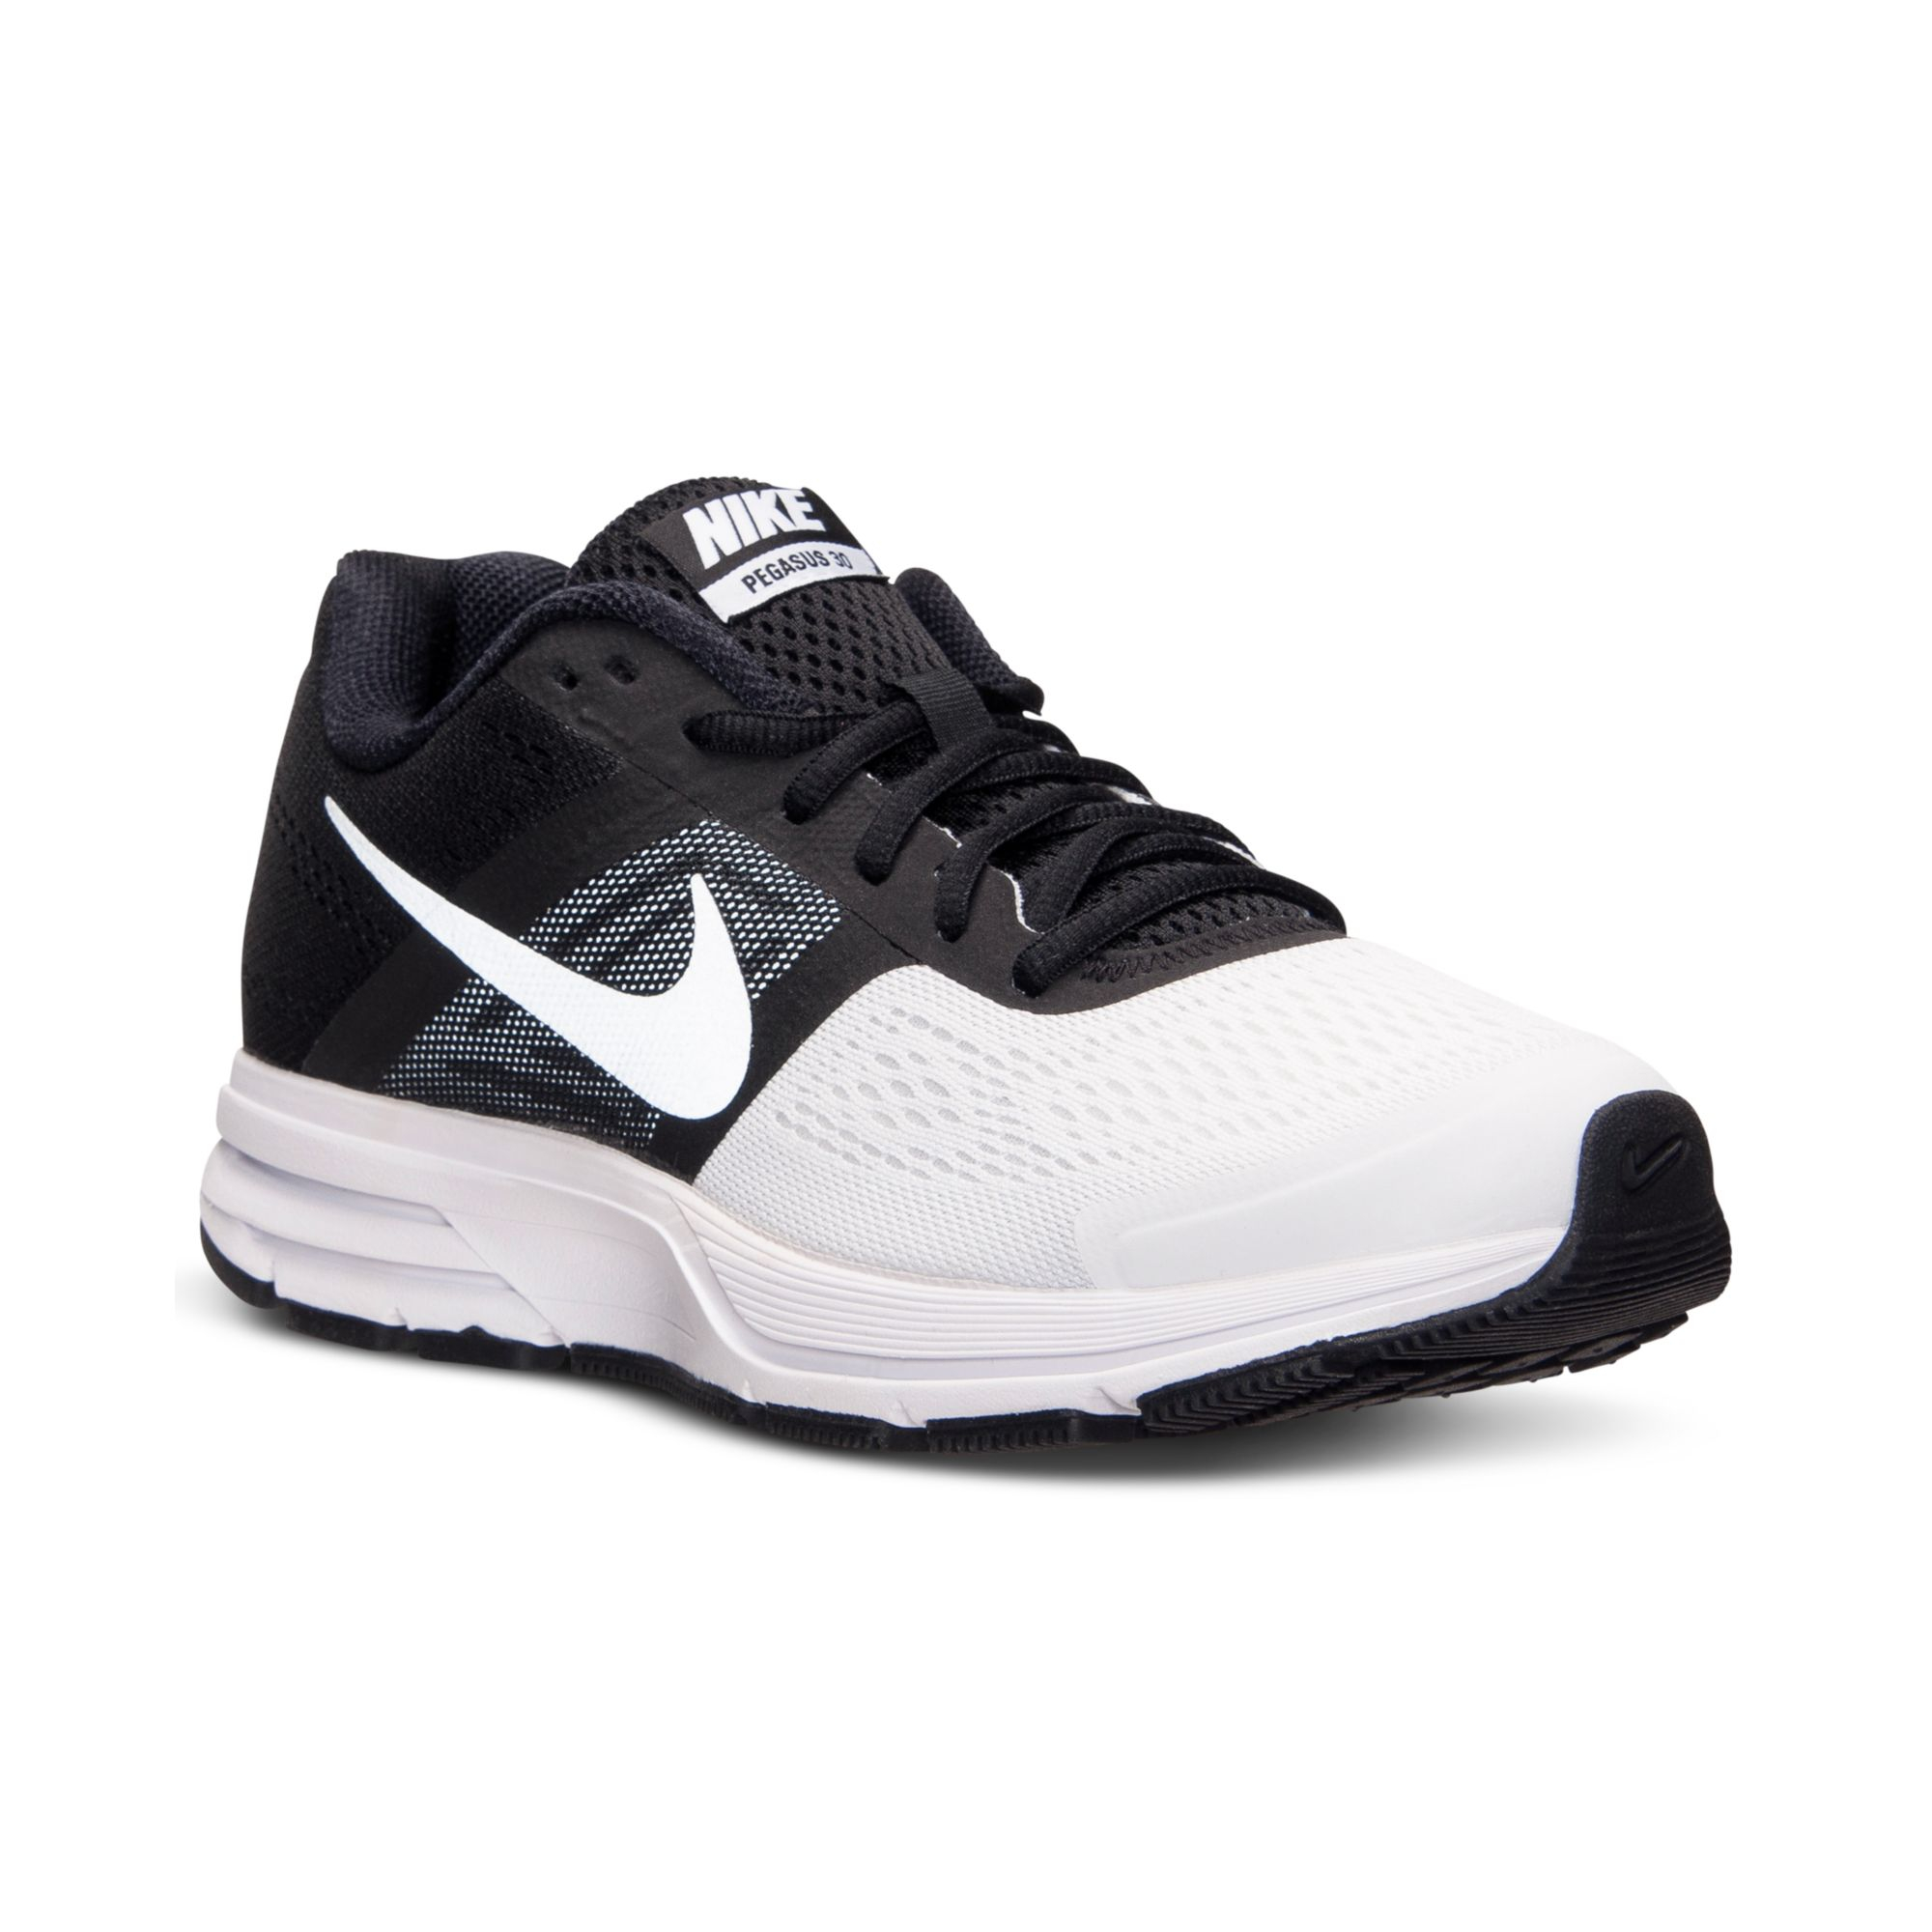 89749605408 Lyst - Nike Mens Air Pegasus 30 Running Sneakers From Finish Line in ...